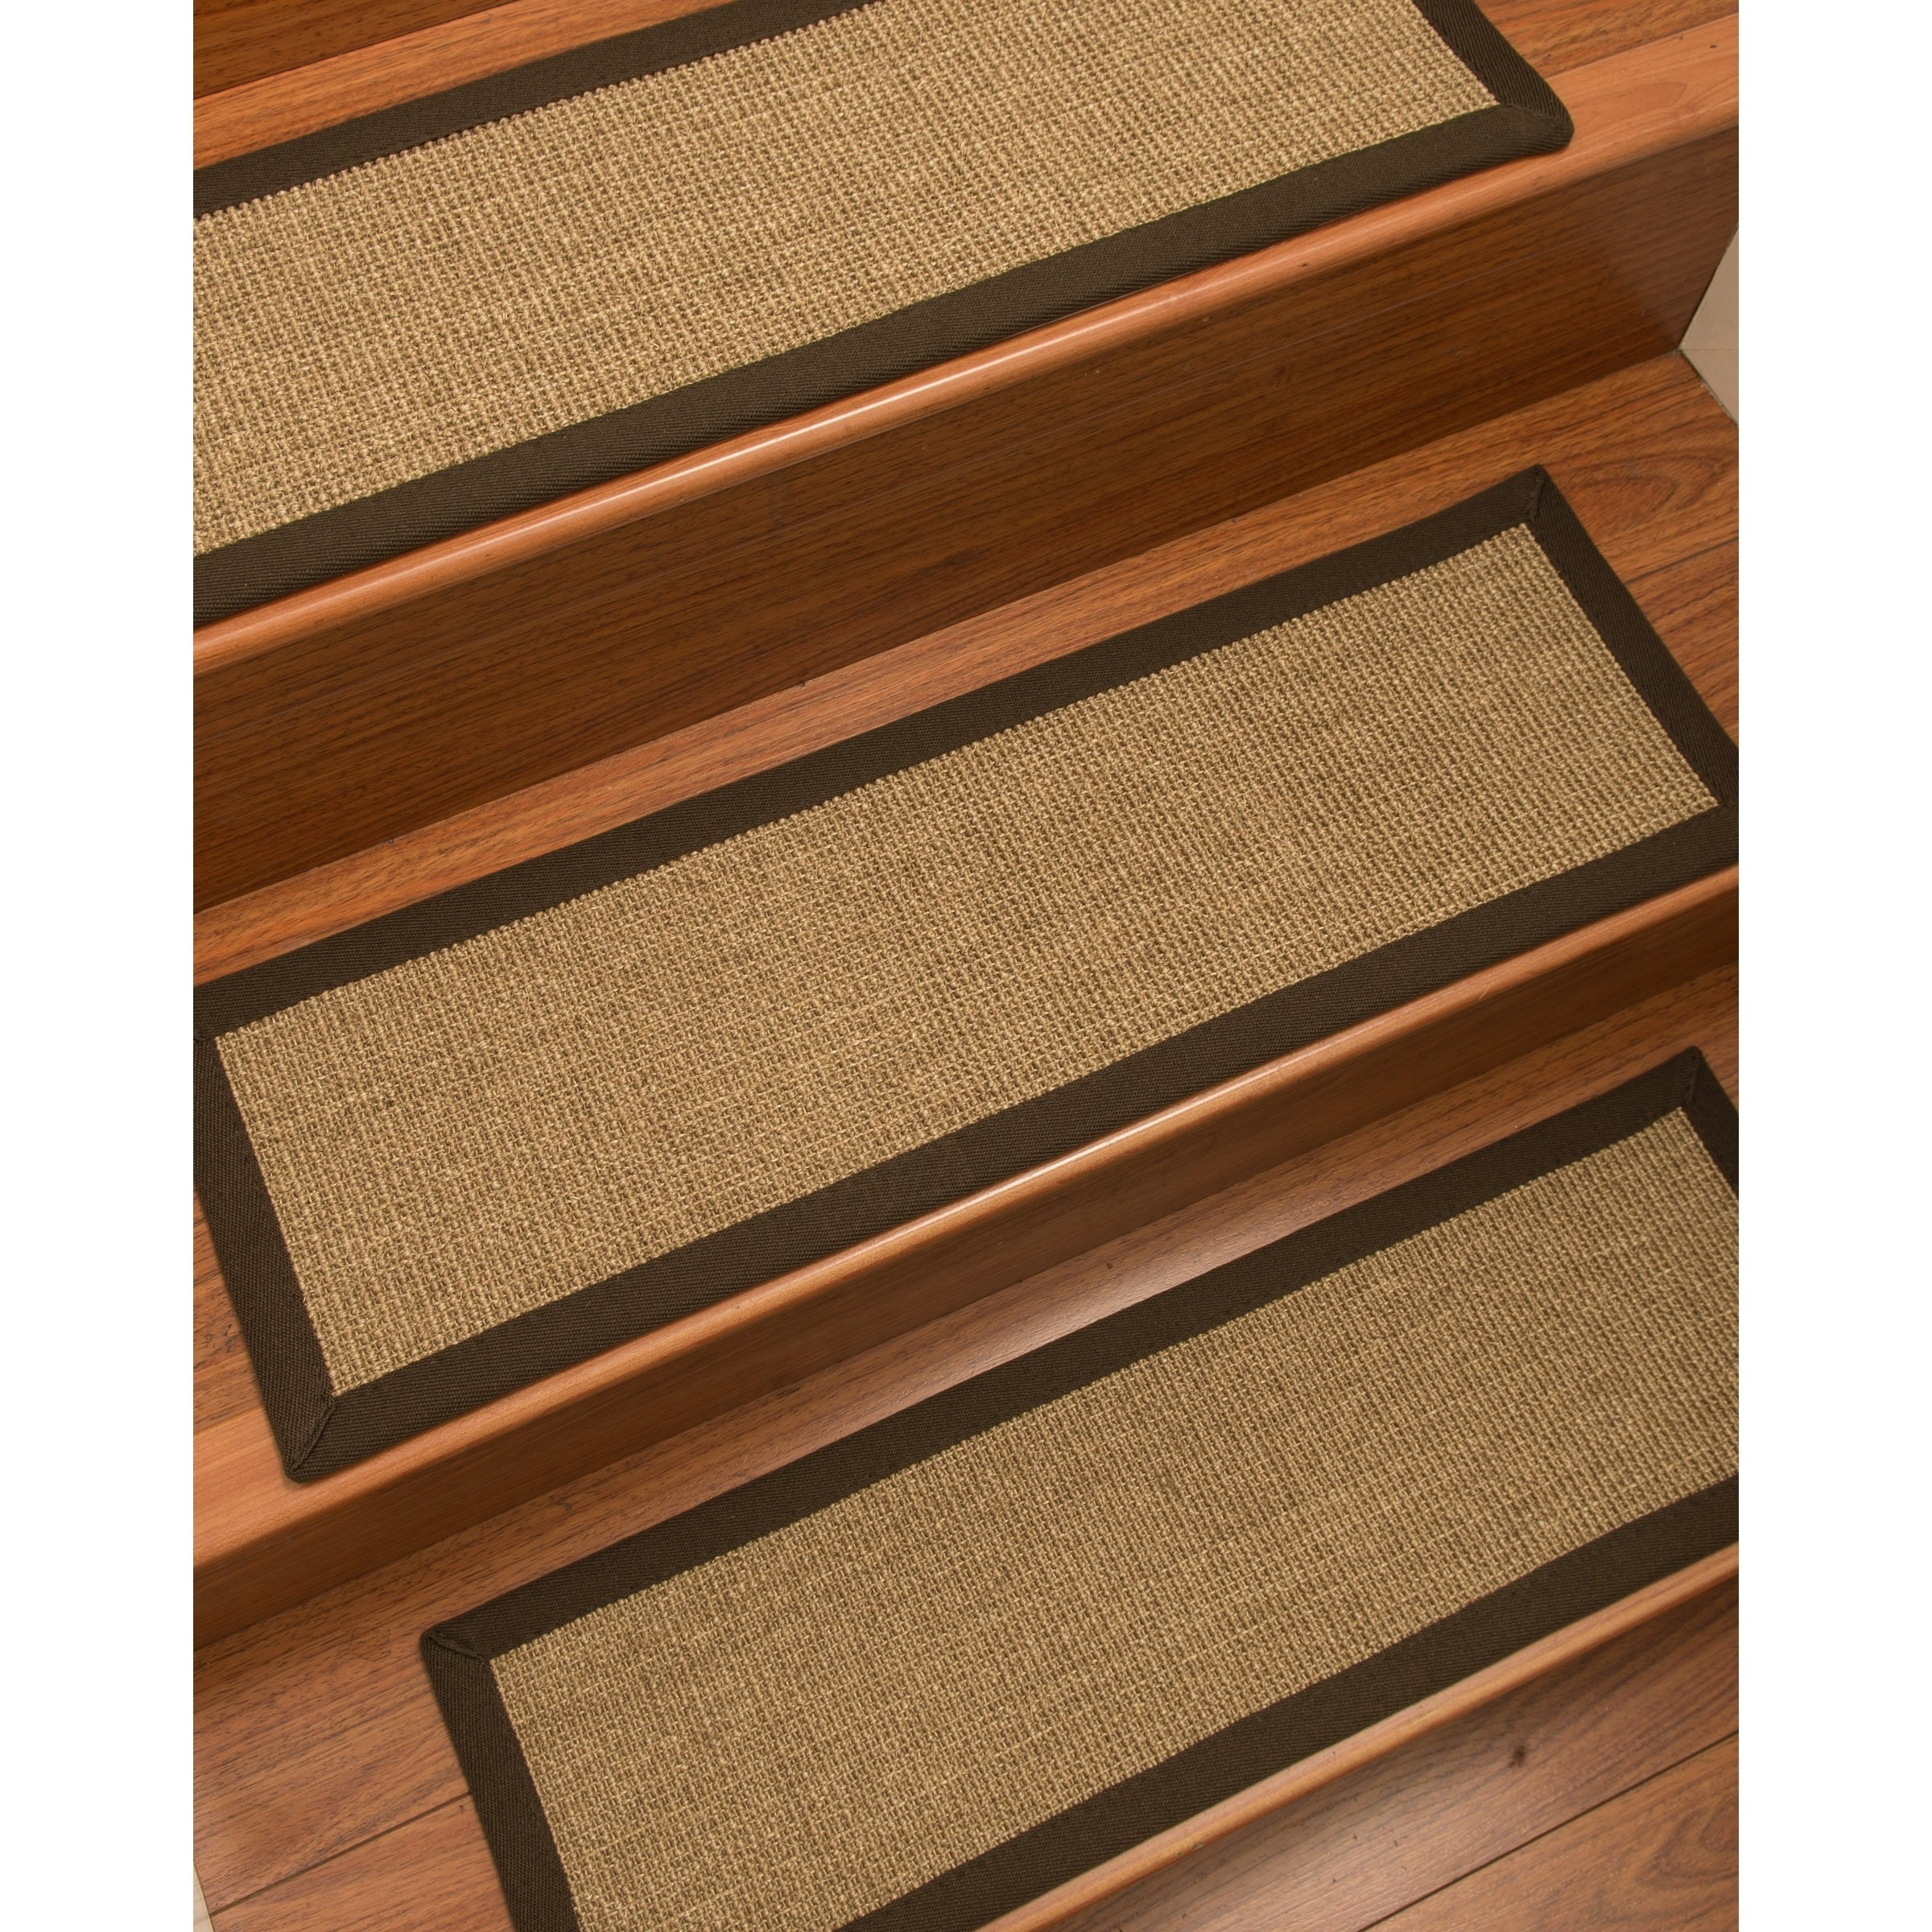 Shop naturalarearugs hand crafted adrina carpet stair treads set of 13 9x 29 on sale free shipping today overstock com 20558439